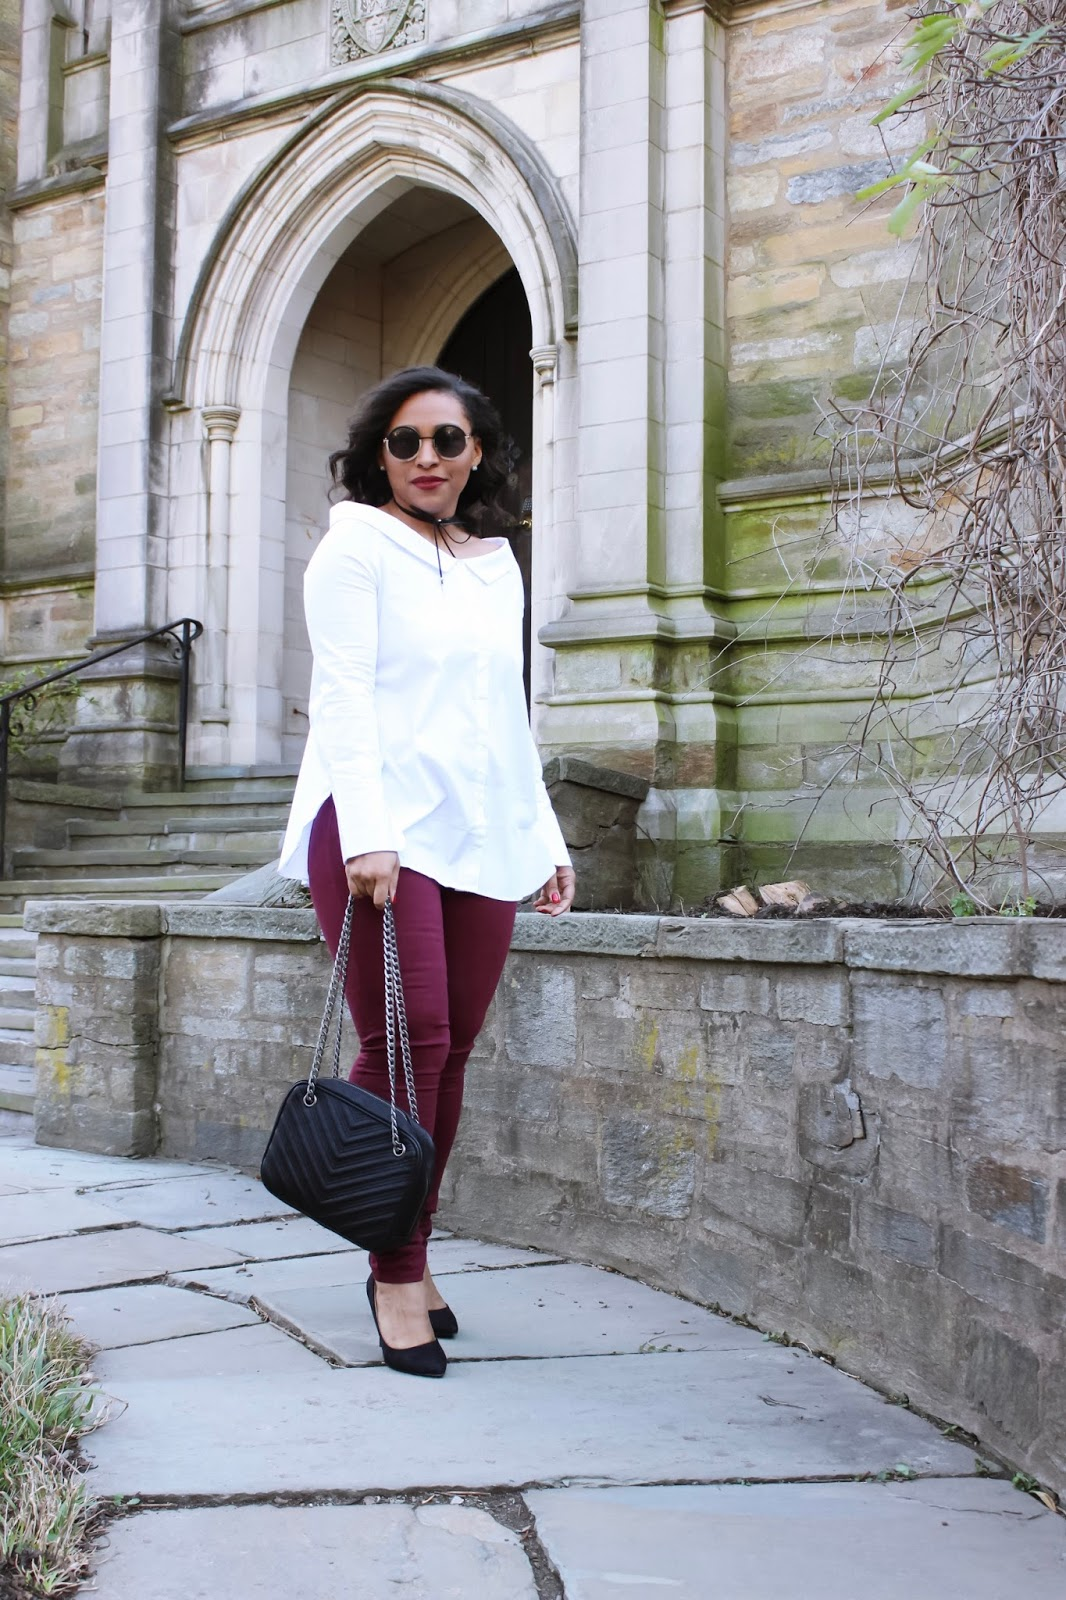 Spice Up The Classic White Blouse, trendy tops, round frame sunglasses, bcbg purses, harry potter background, neck bow chokers, white button up, chain strap purse